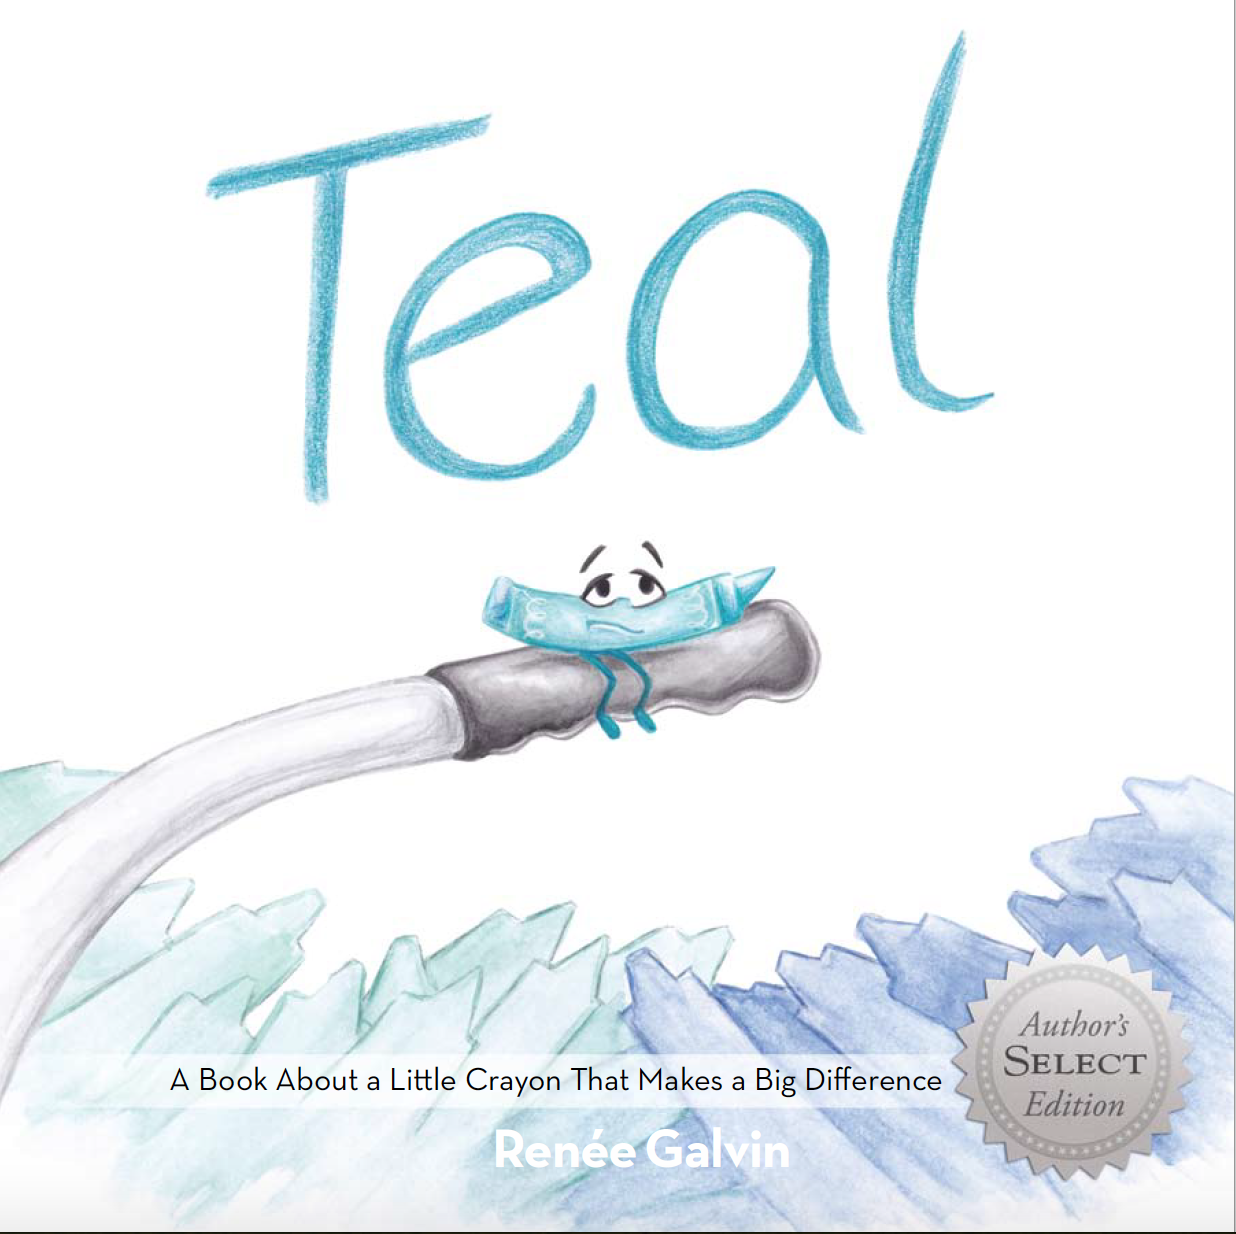 New colour me beautiful book 2016 - Teal Is A Wonderful Story About A Little Teal Crayon Who Is Trying To Fit In Teal Loves To Create Beautiful Artwork And Use His Color To Bring Beauty To